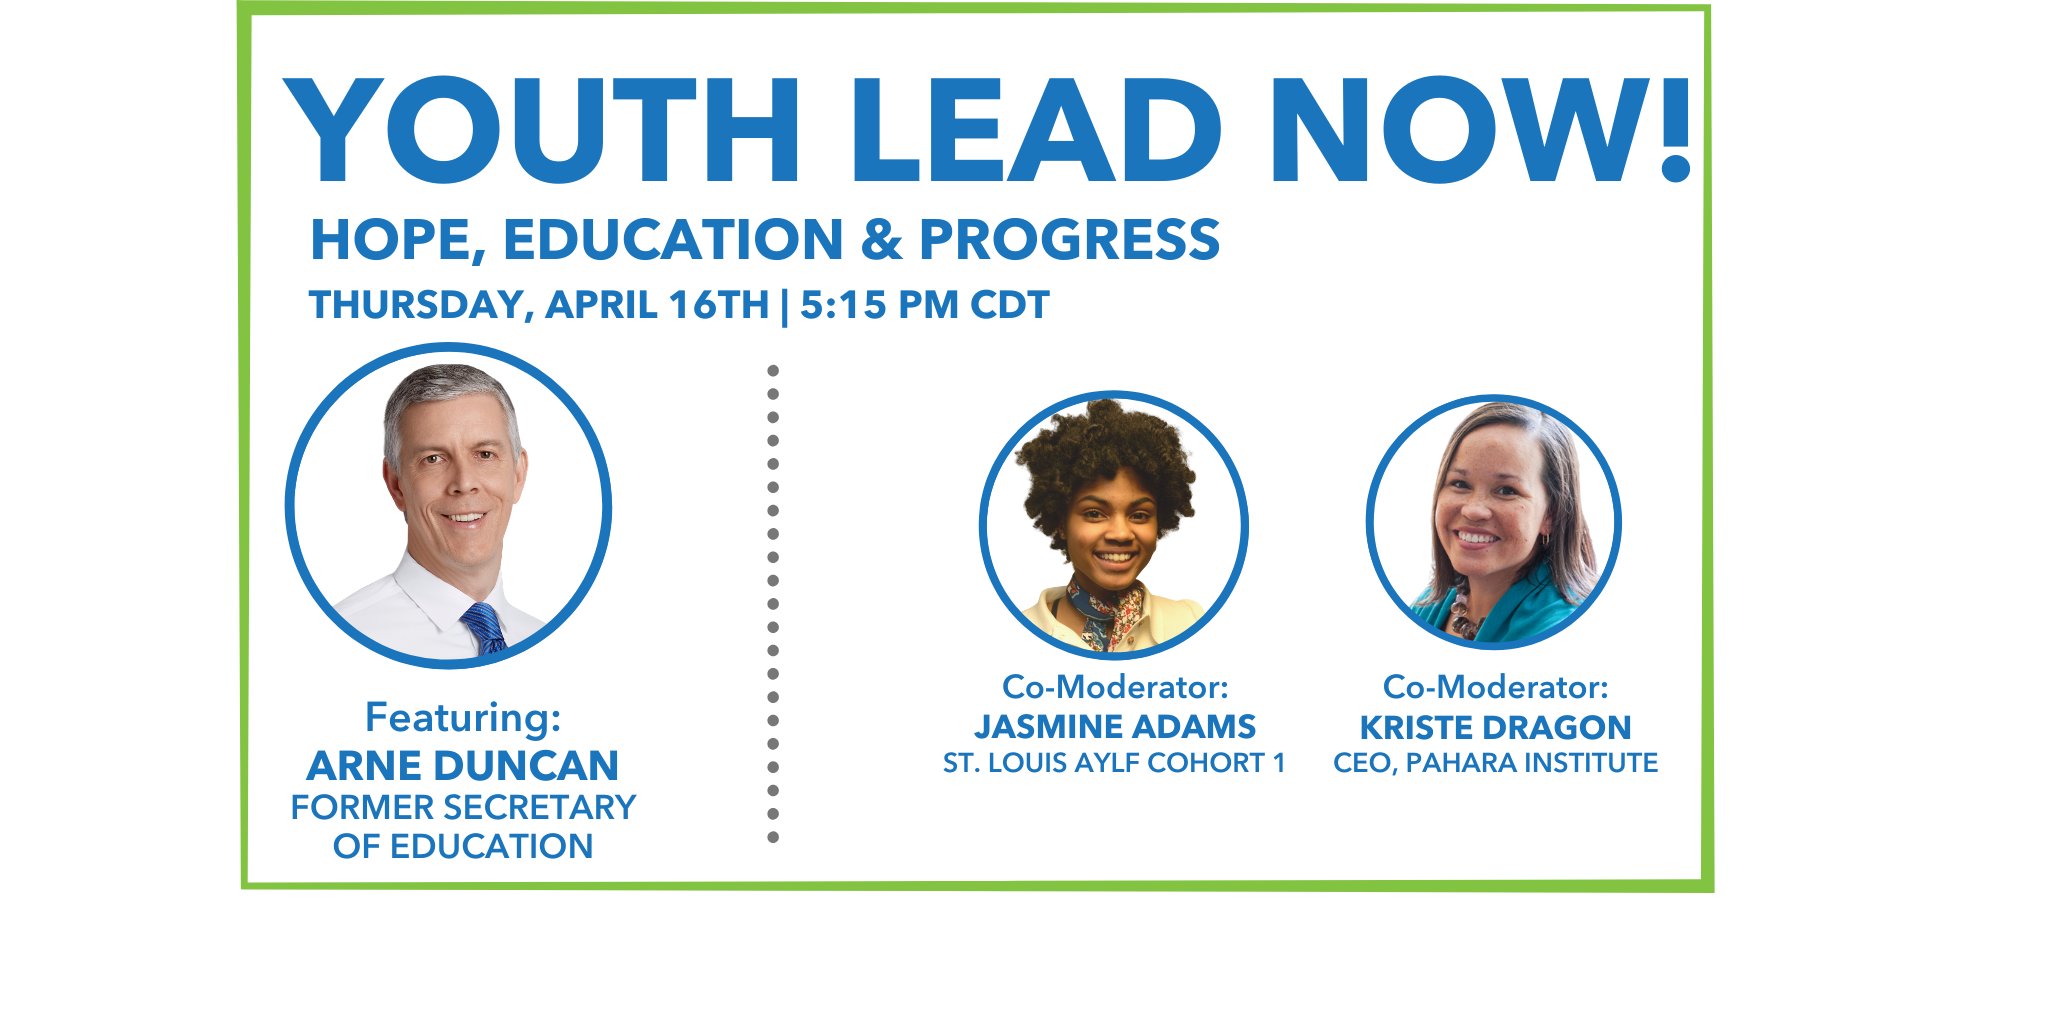 Youth Lead Now! Hope, Education, & Pathways to Progress